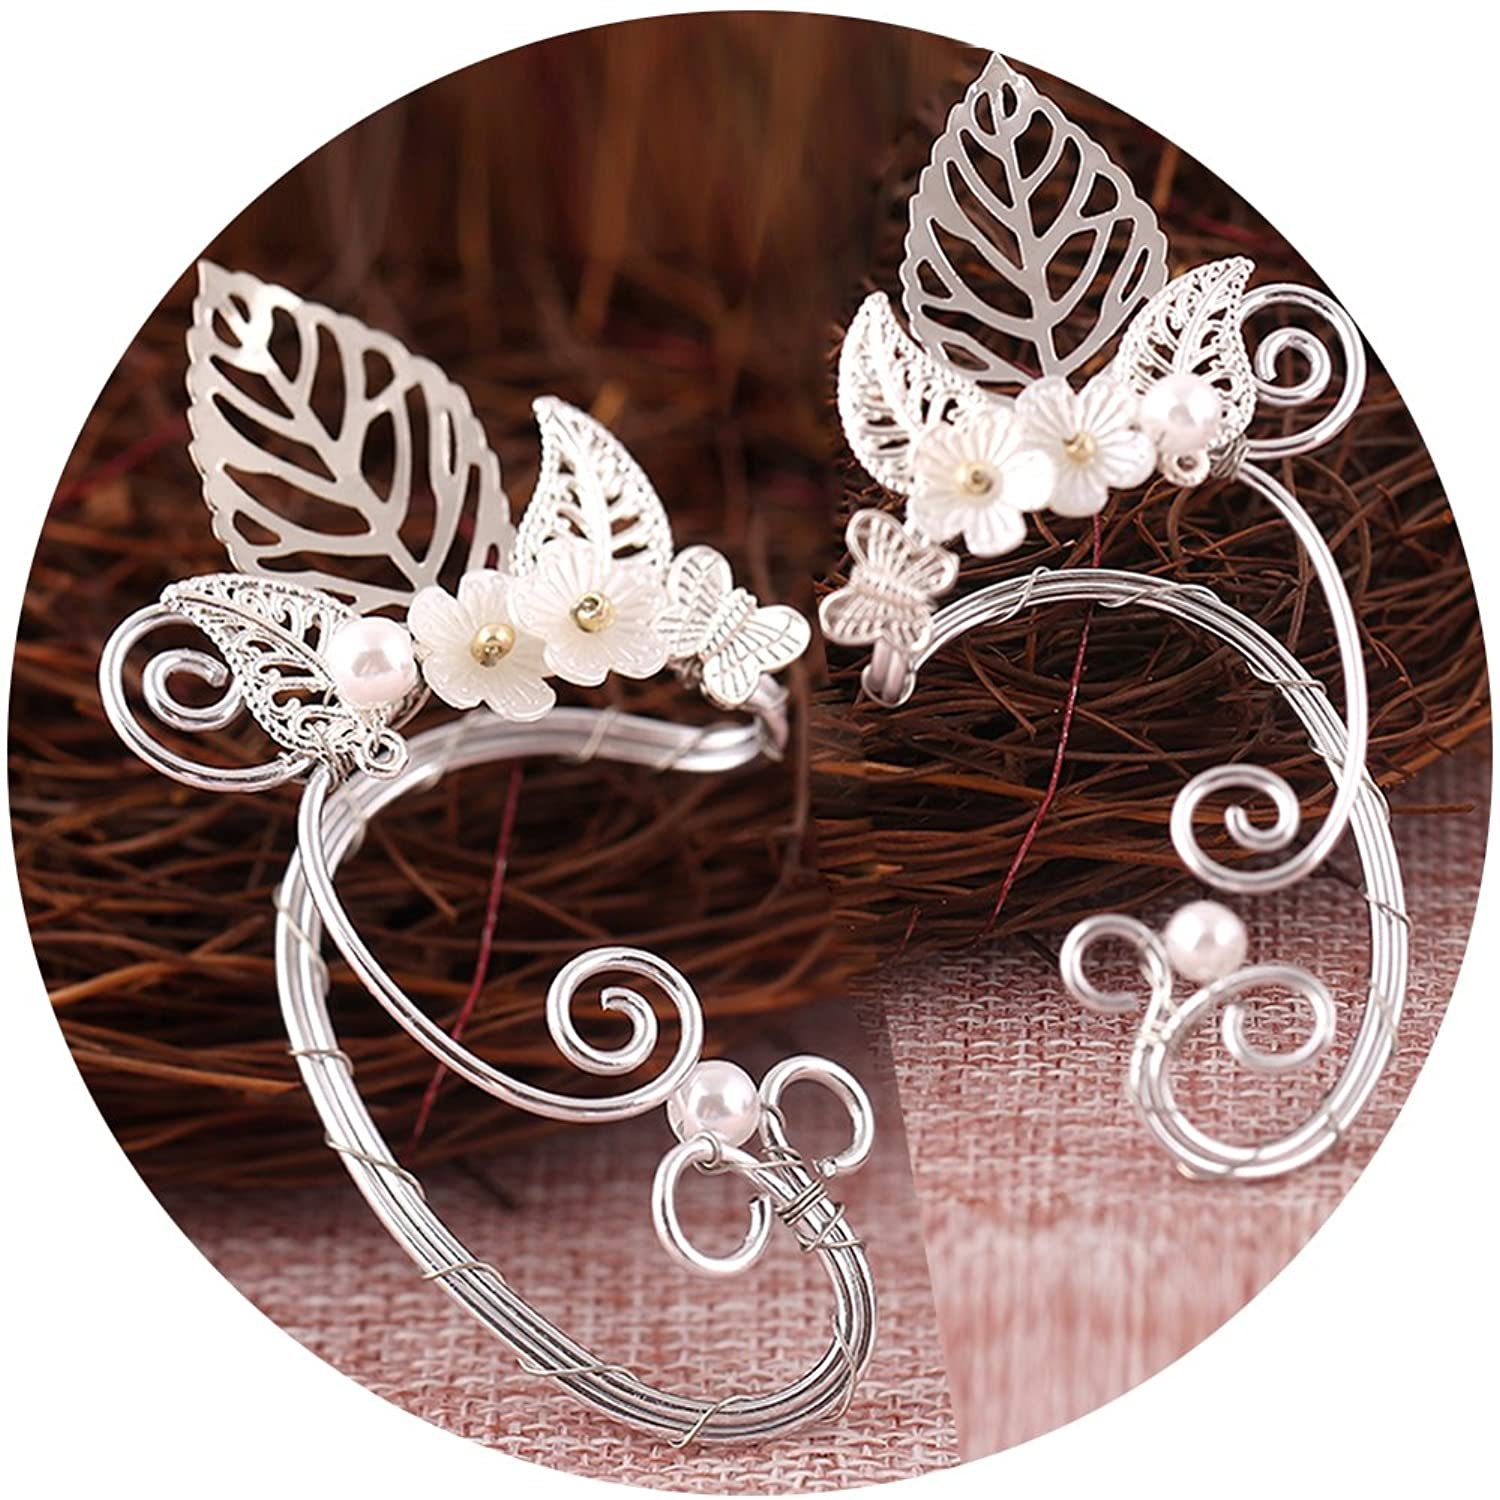 Elf Ear Cuffs, Aifeer 1 Pair Pearl Beads Filigree Fairy Elven Ear Cuffs, Cosplay Fantasy Costume Ears Cuffs